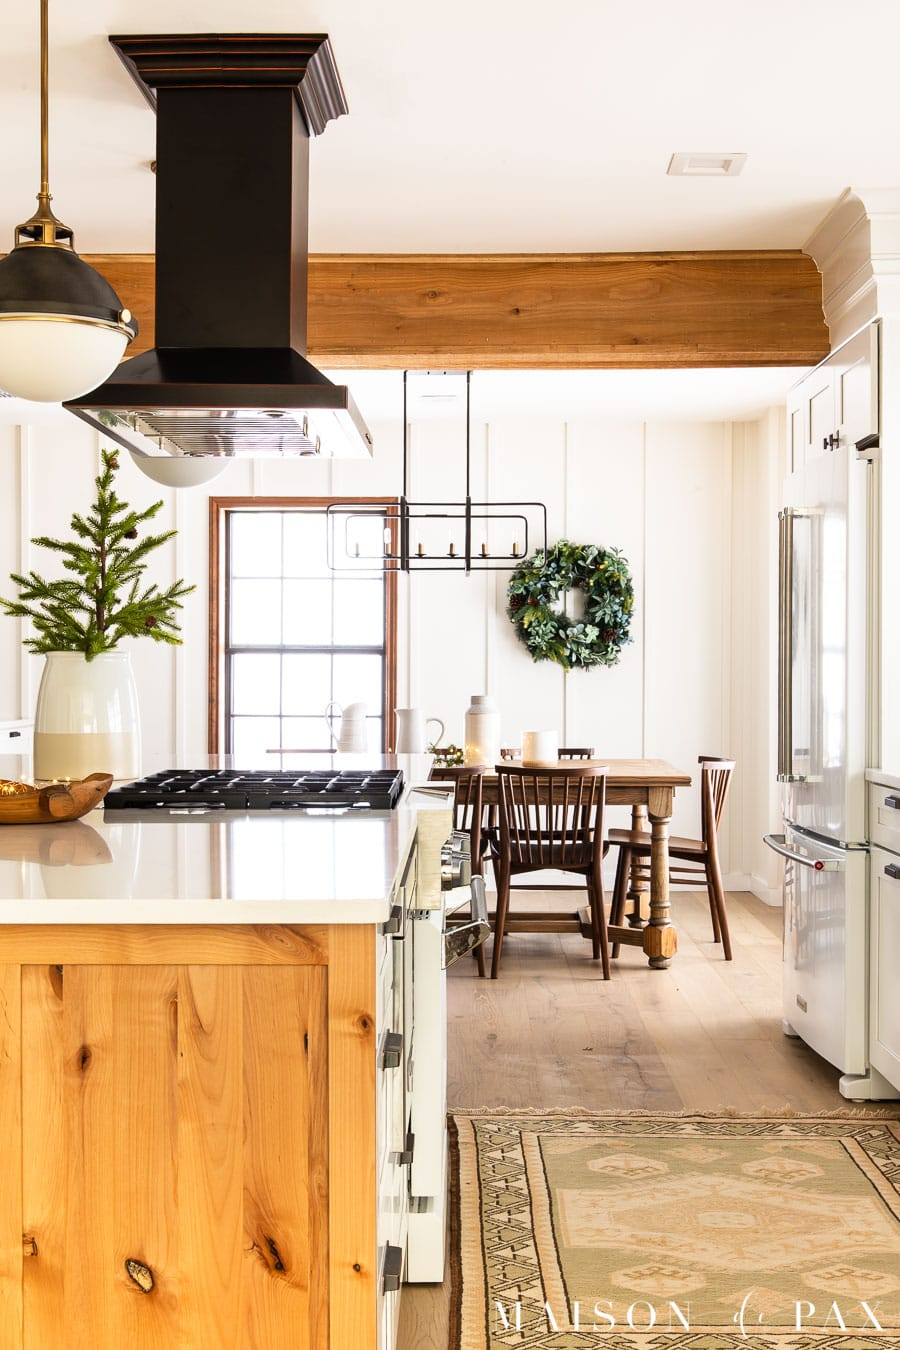 white and wood kitchen with rustic beams, farm table, and holiday greenery | Maison de Pax